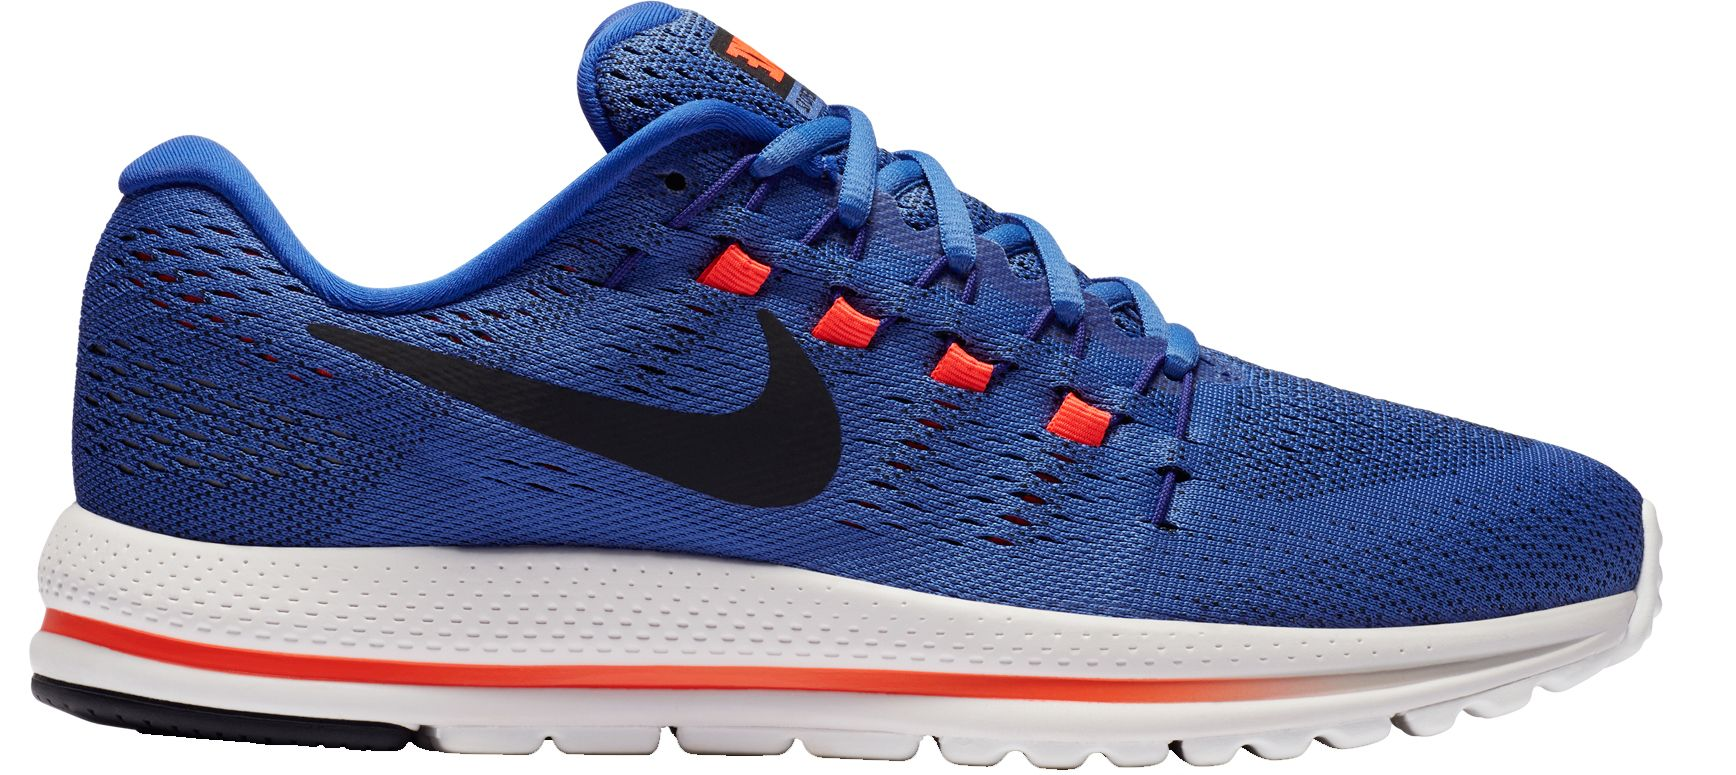 Nike Men's Air Zoom Vomero 12 Running Shoes. 0:00. 0:00 / 0:00.  noImageFound ???